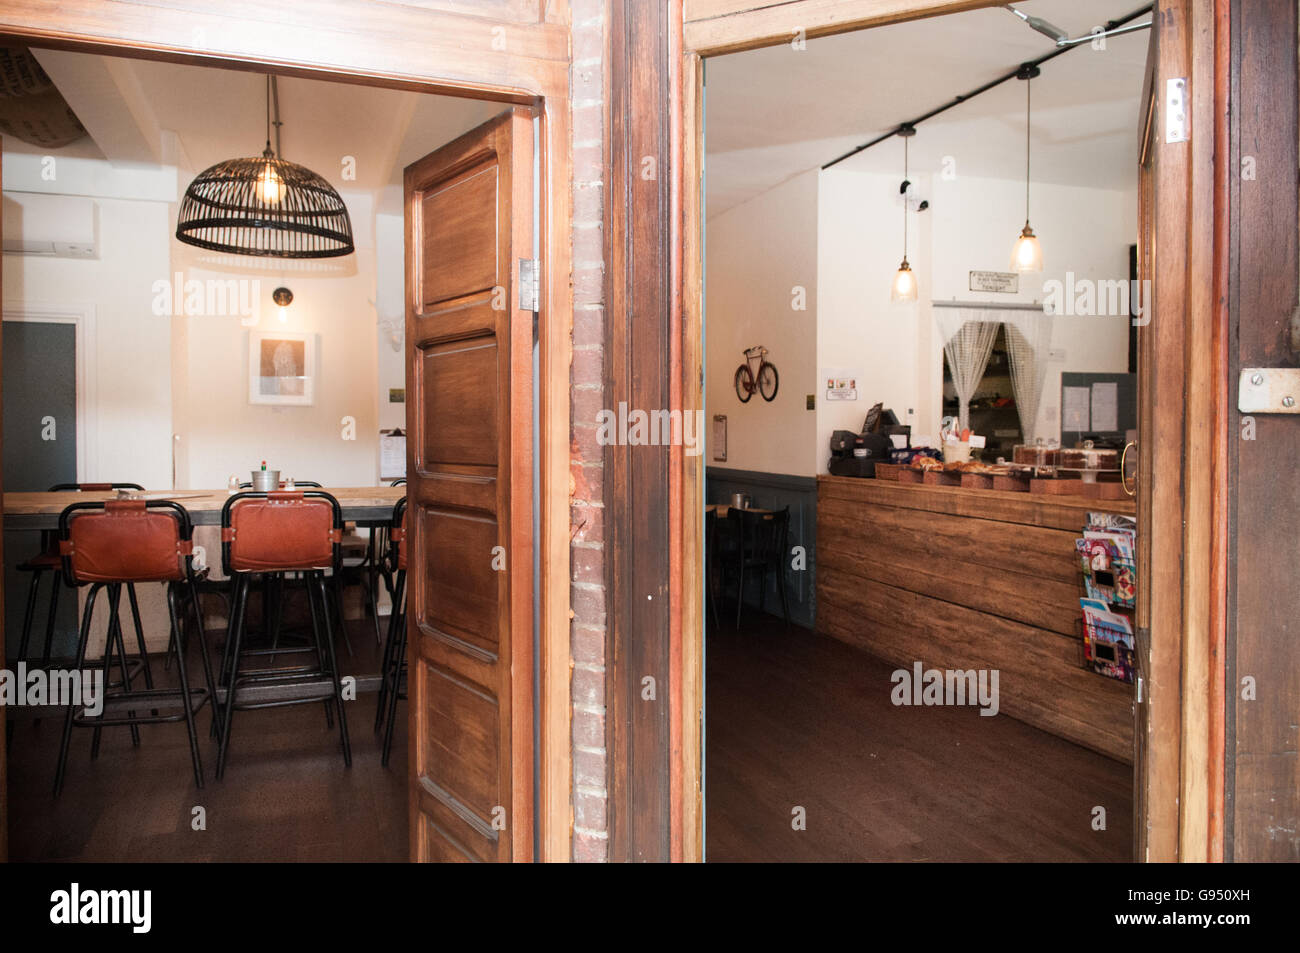 https www alamy com stock photo interior of a rustic coffee shop with a large wooden table in foreground 108904617 html